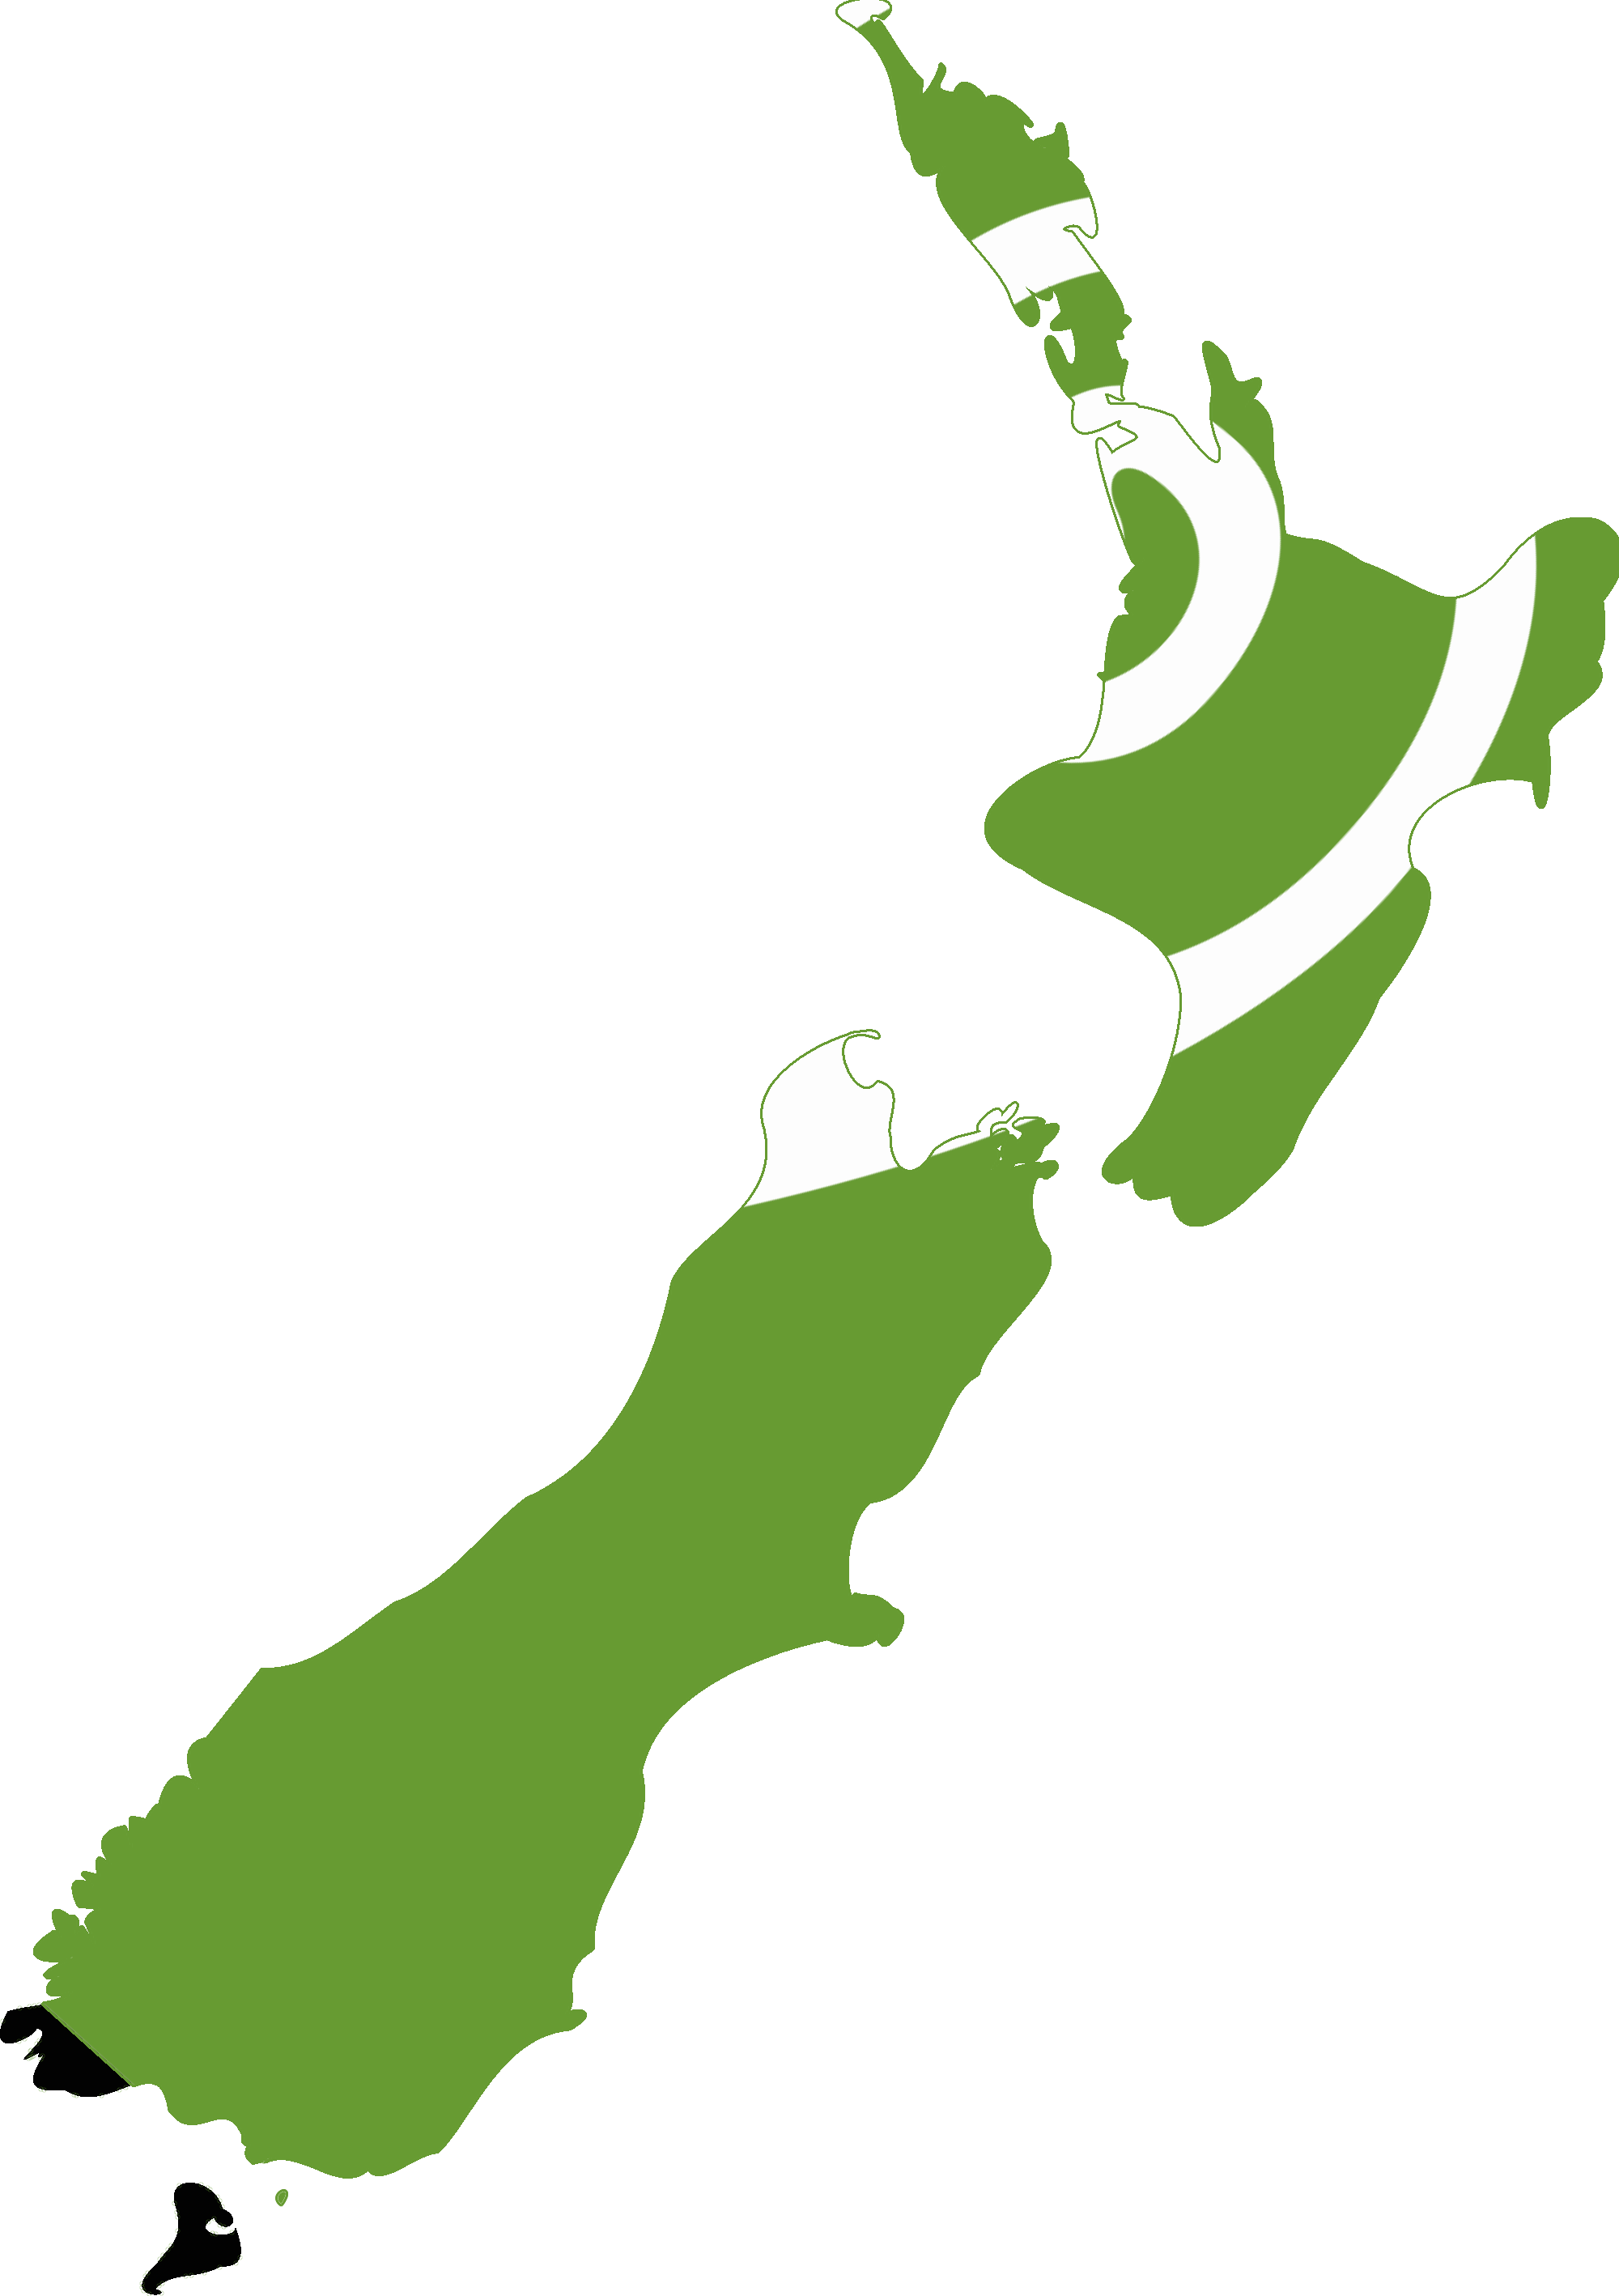 File:Flag map of New Zealand (Koru Flag).png - New Zealand PNG